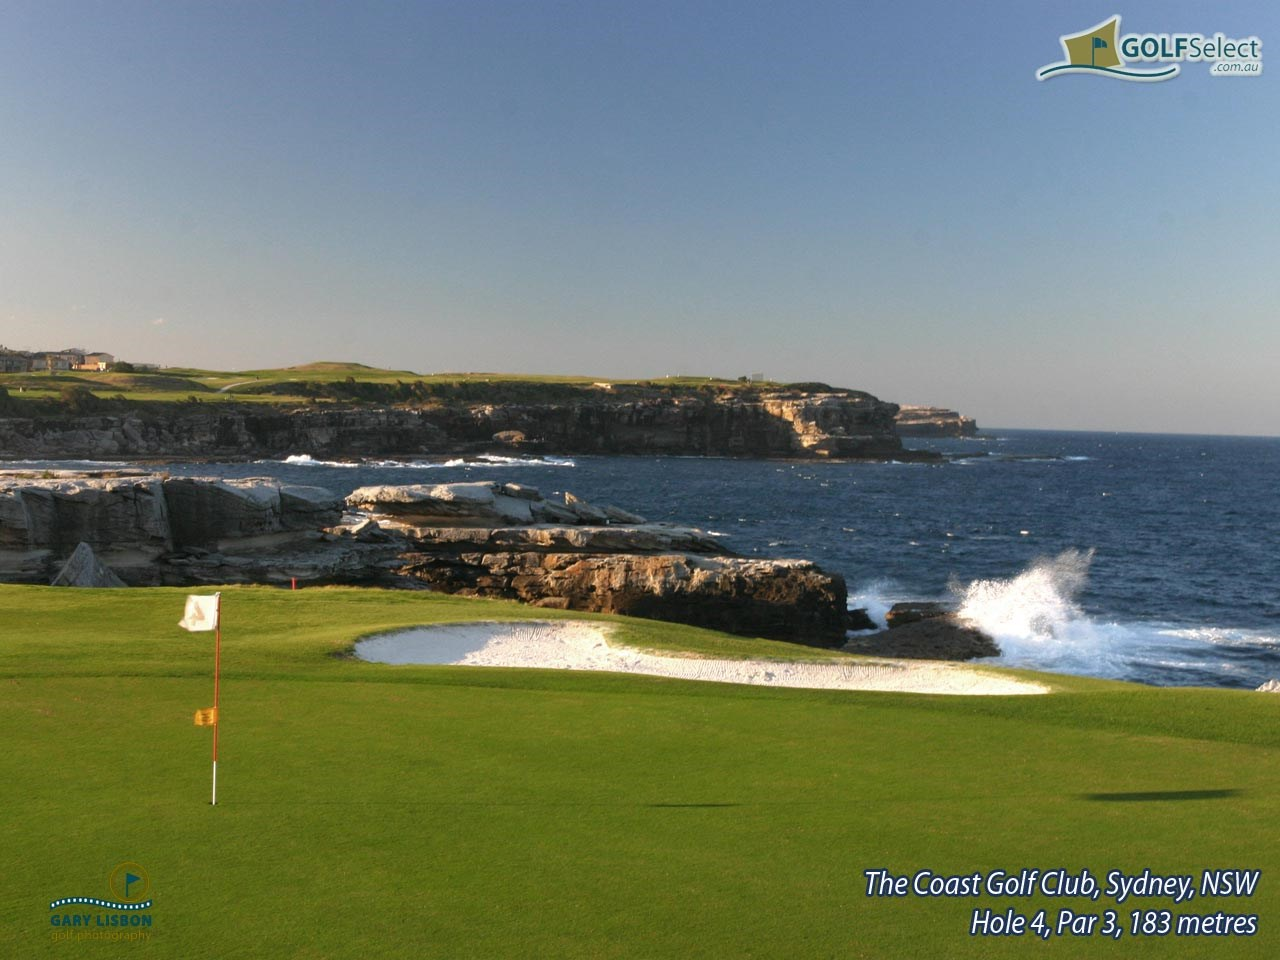 The Coast Golf & Recreation Club Hole 4, Par 3, 183 metres